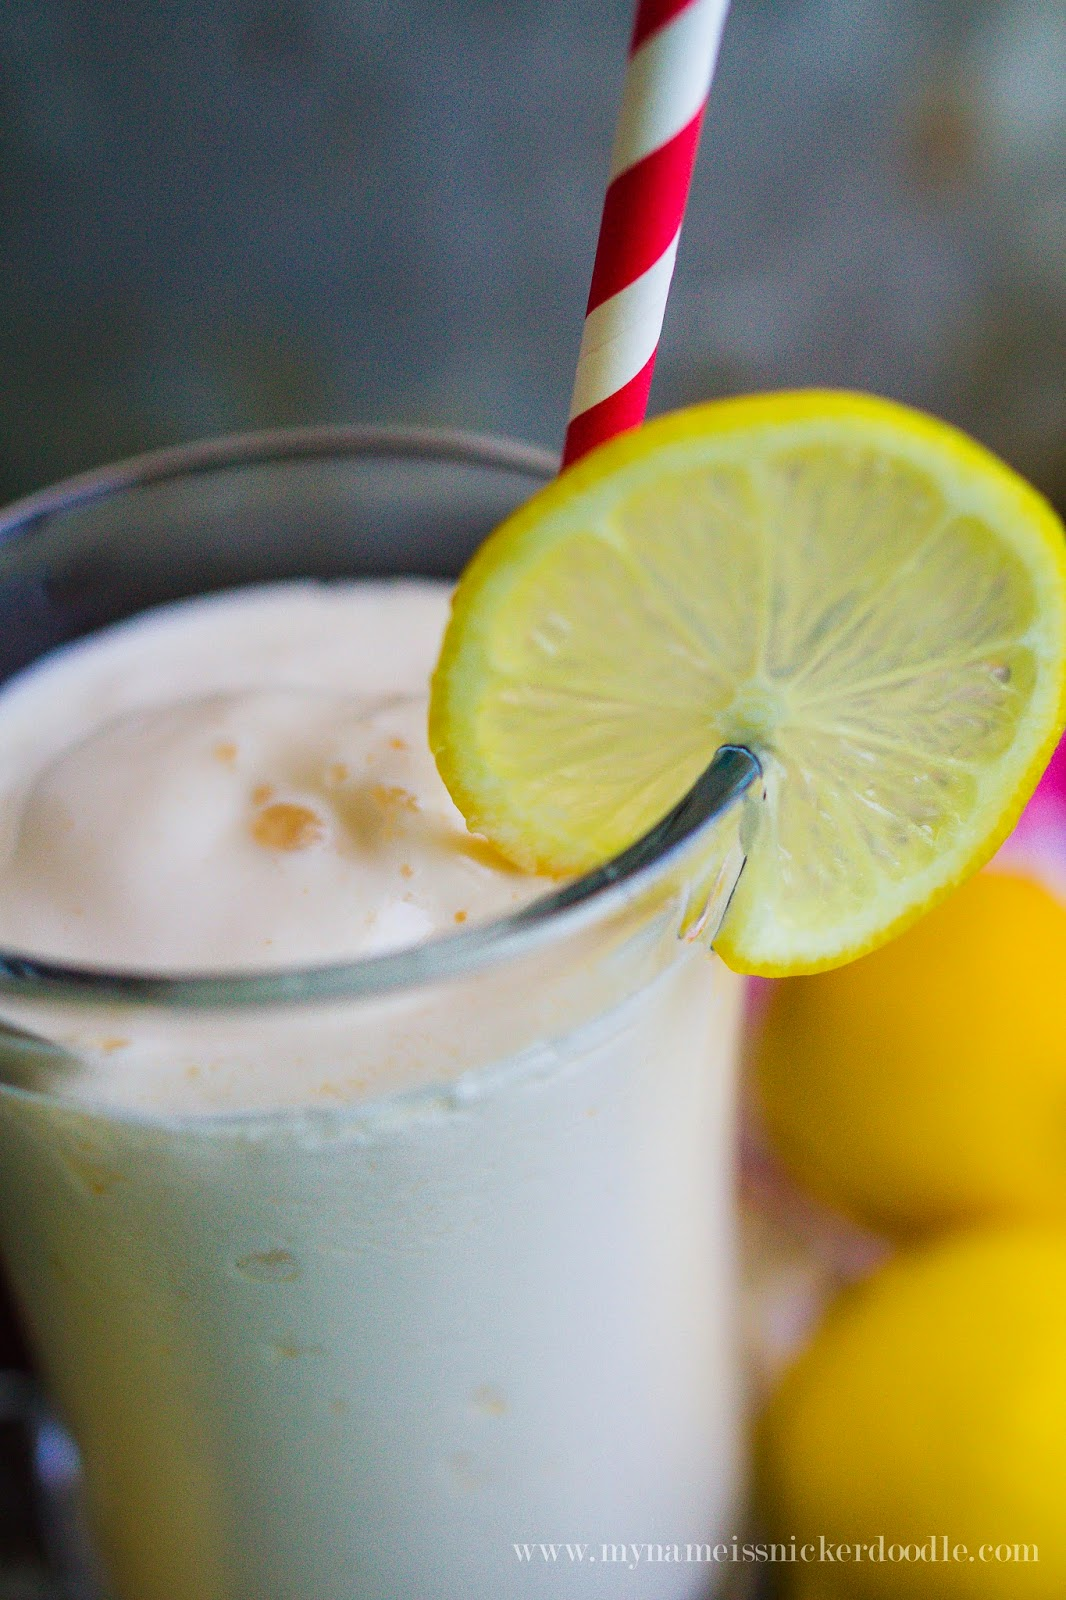 This Frosted Lemonade only has two ingredients and tastes like the one at Chick-fil-a  |  My Name Is Snickerdoodle